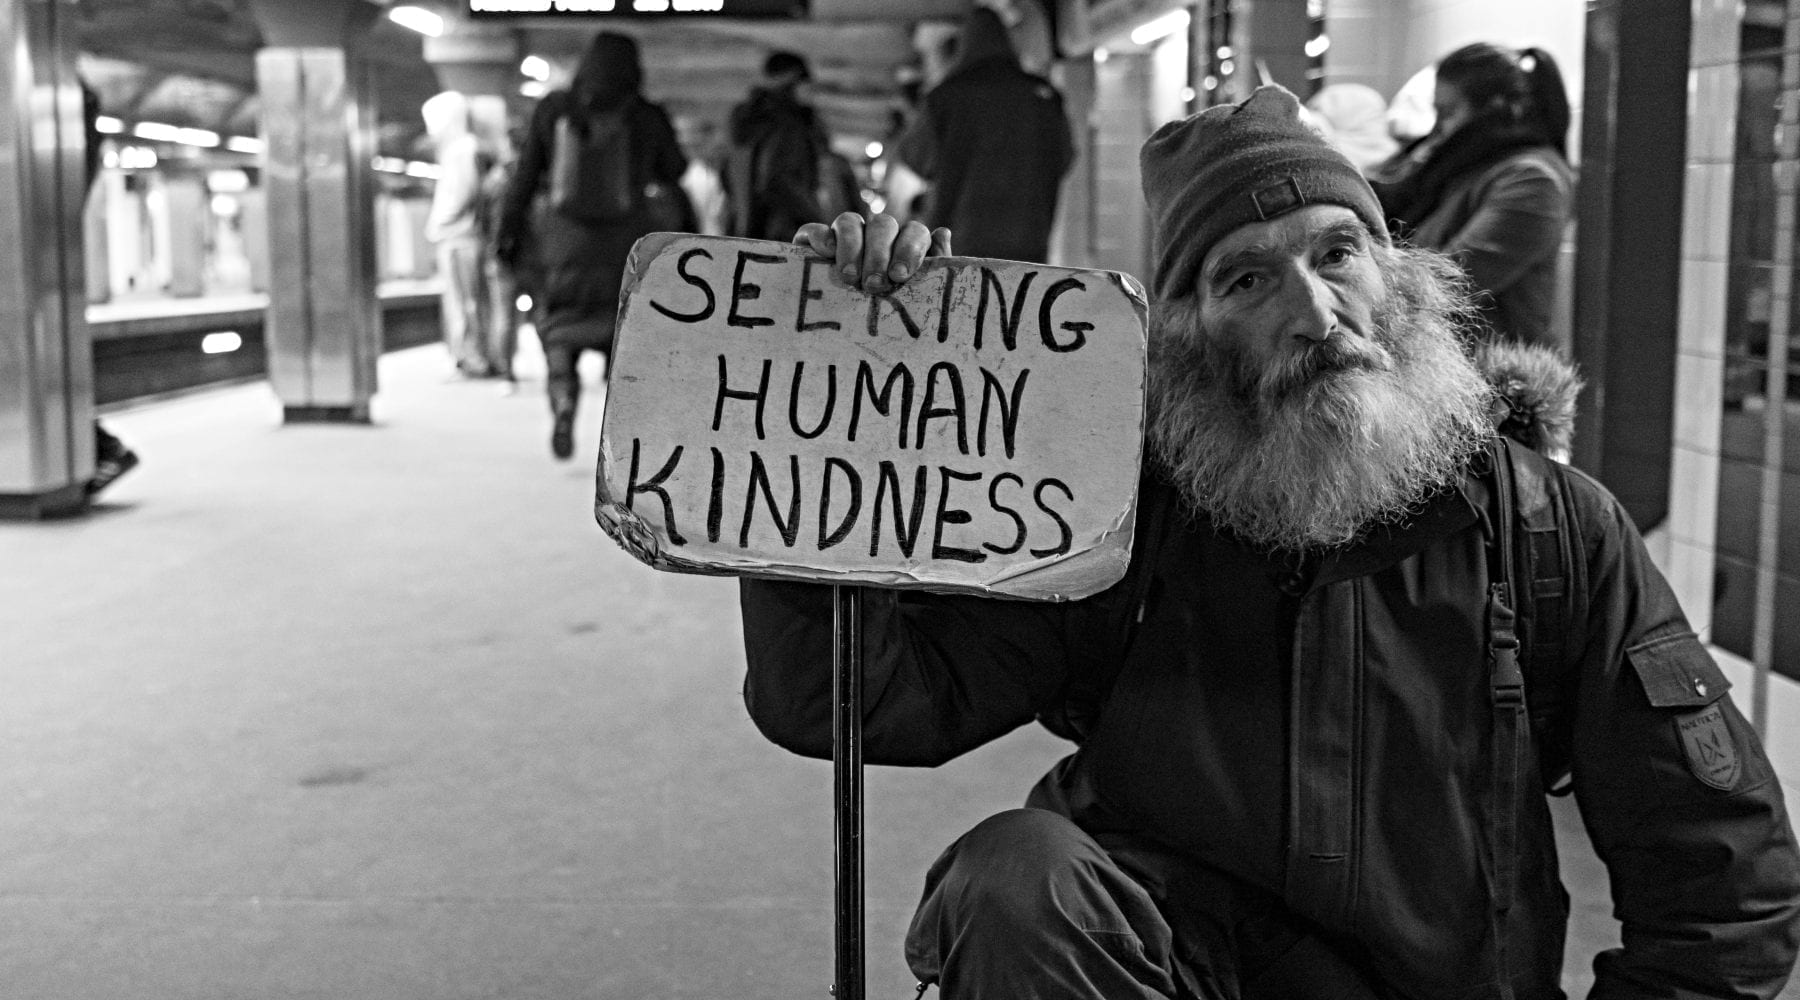 Seated beggar holding sign seeking kindness